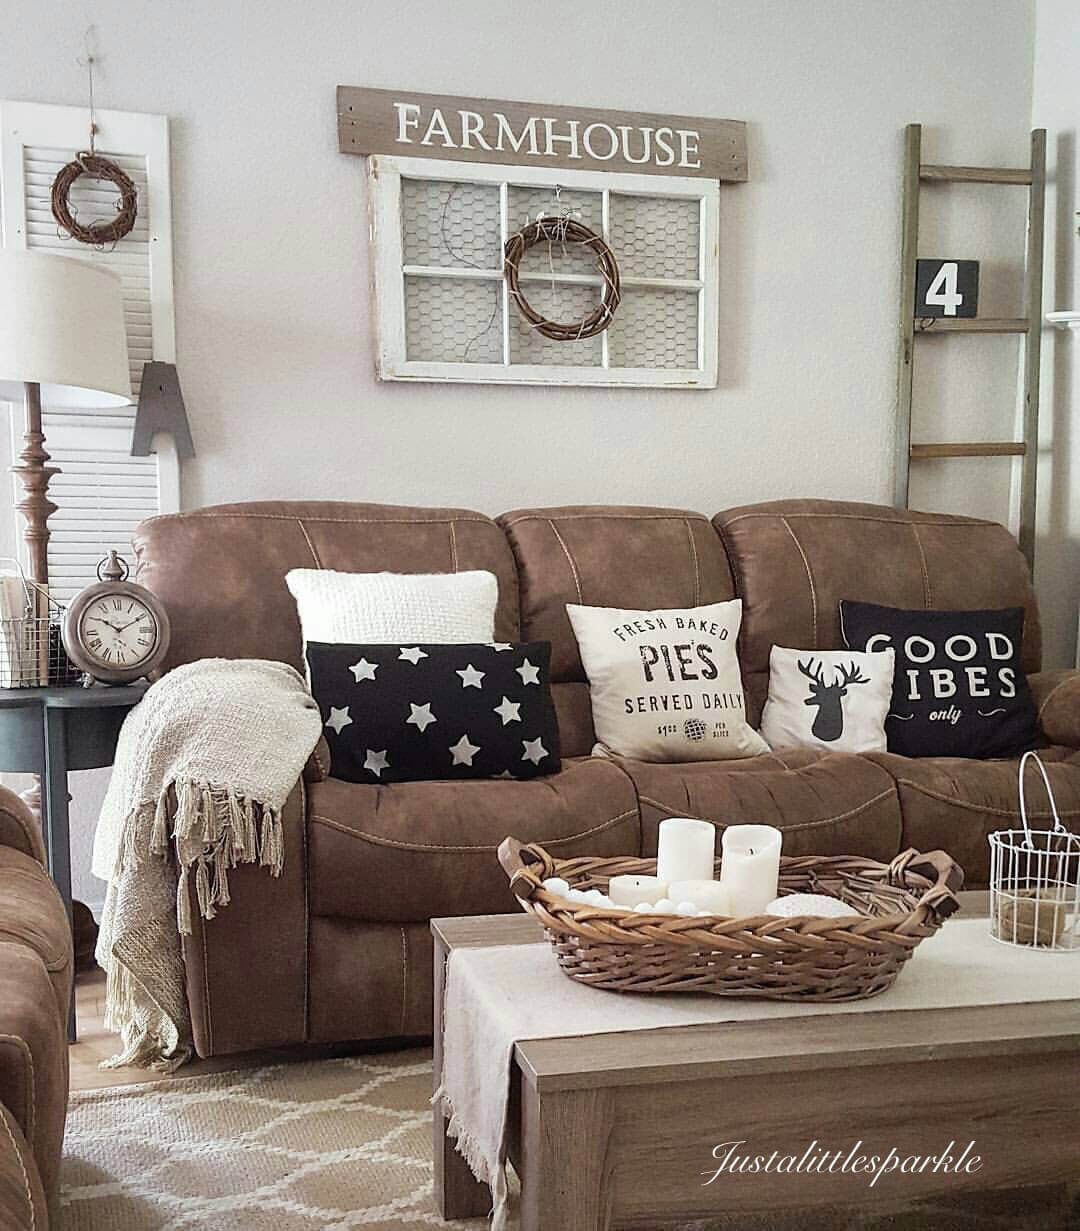 Microfiber Couch Farmhouse Living Room Decor Ideas These Pillows Are So Cute